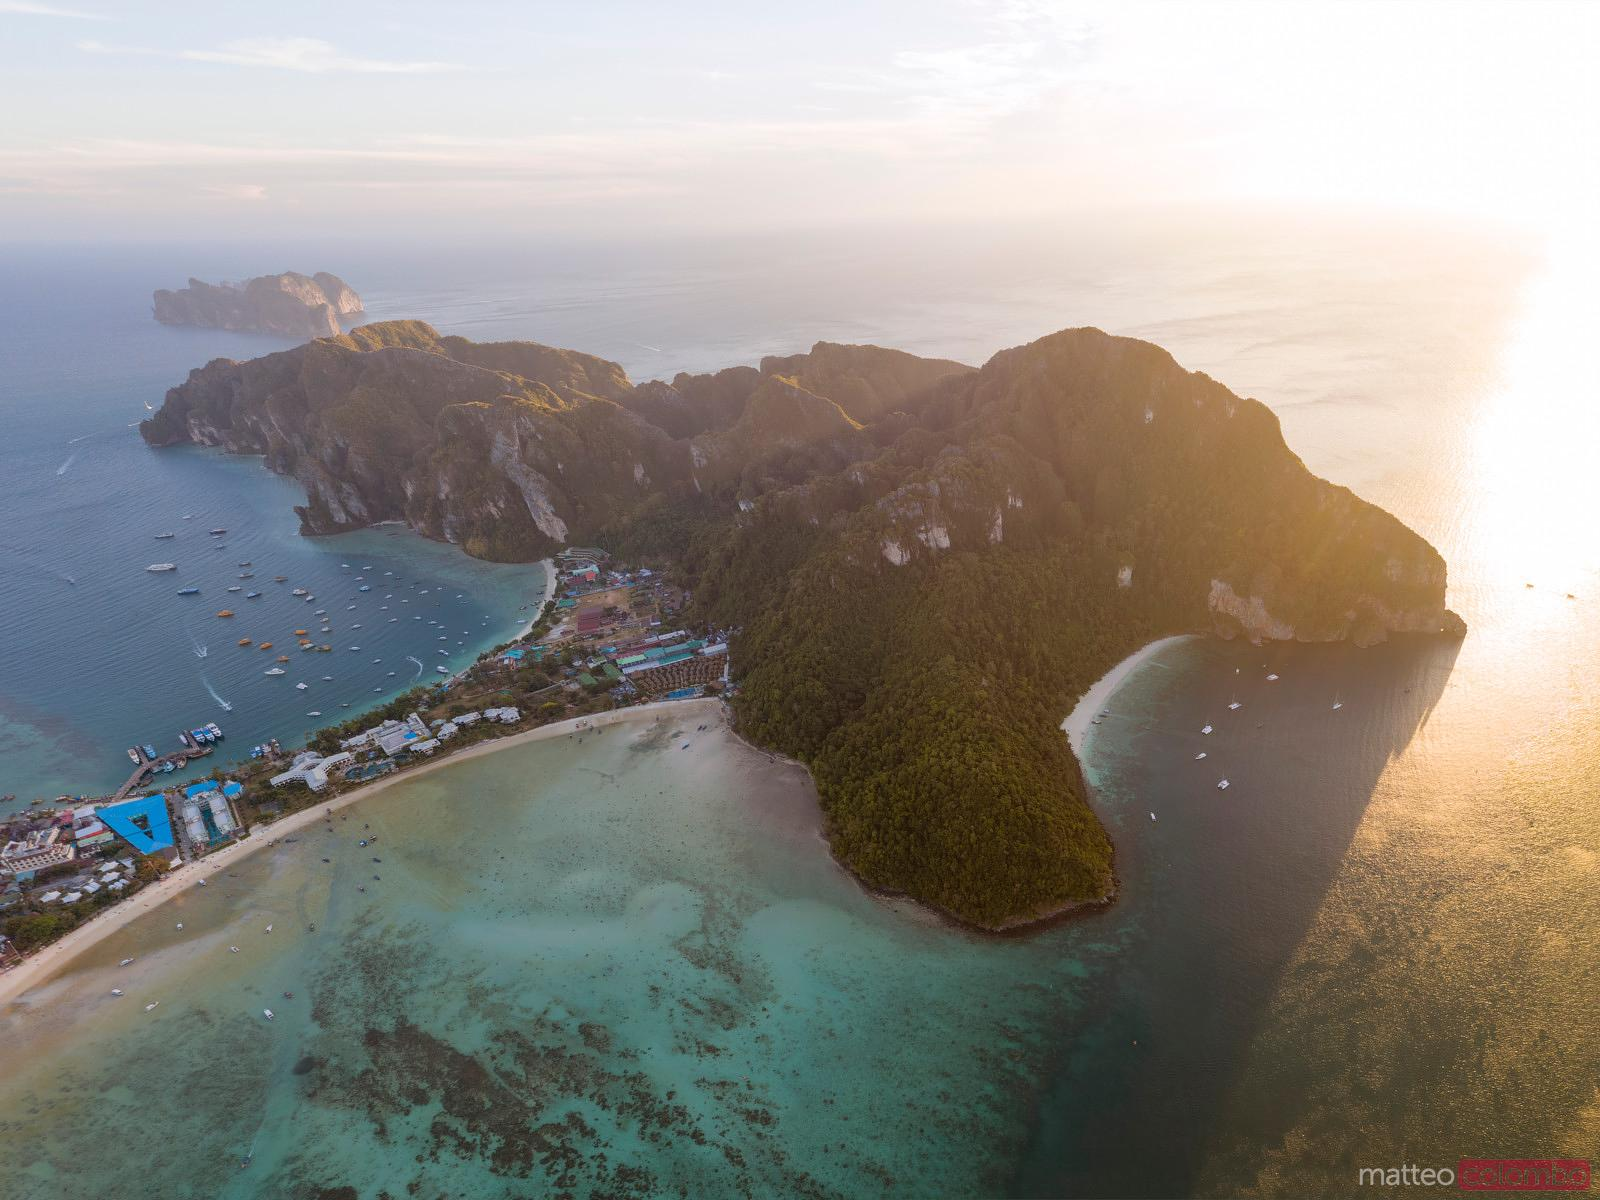 Aerial view of Ko Phi Phi Don island at sunset, Thailand